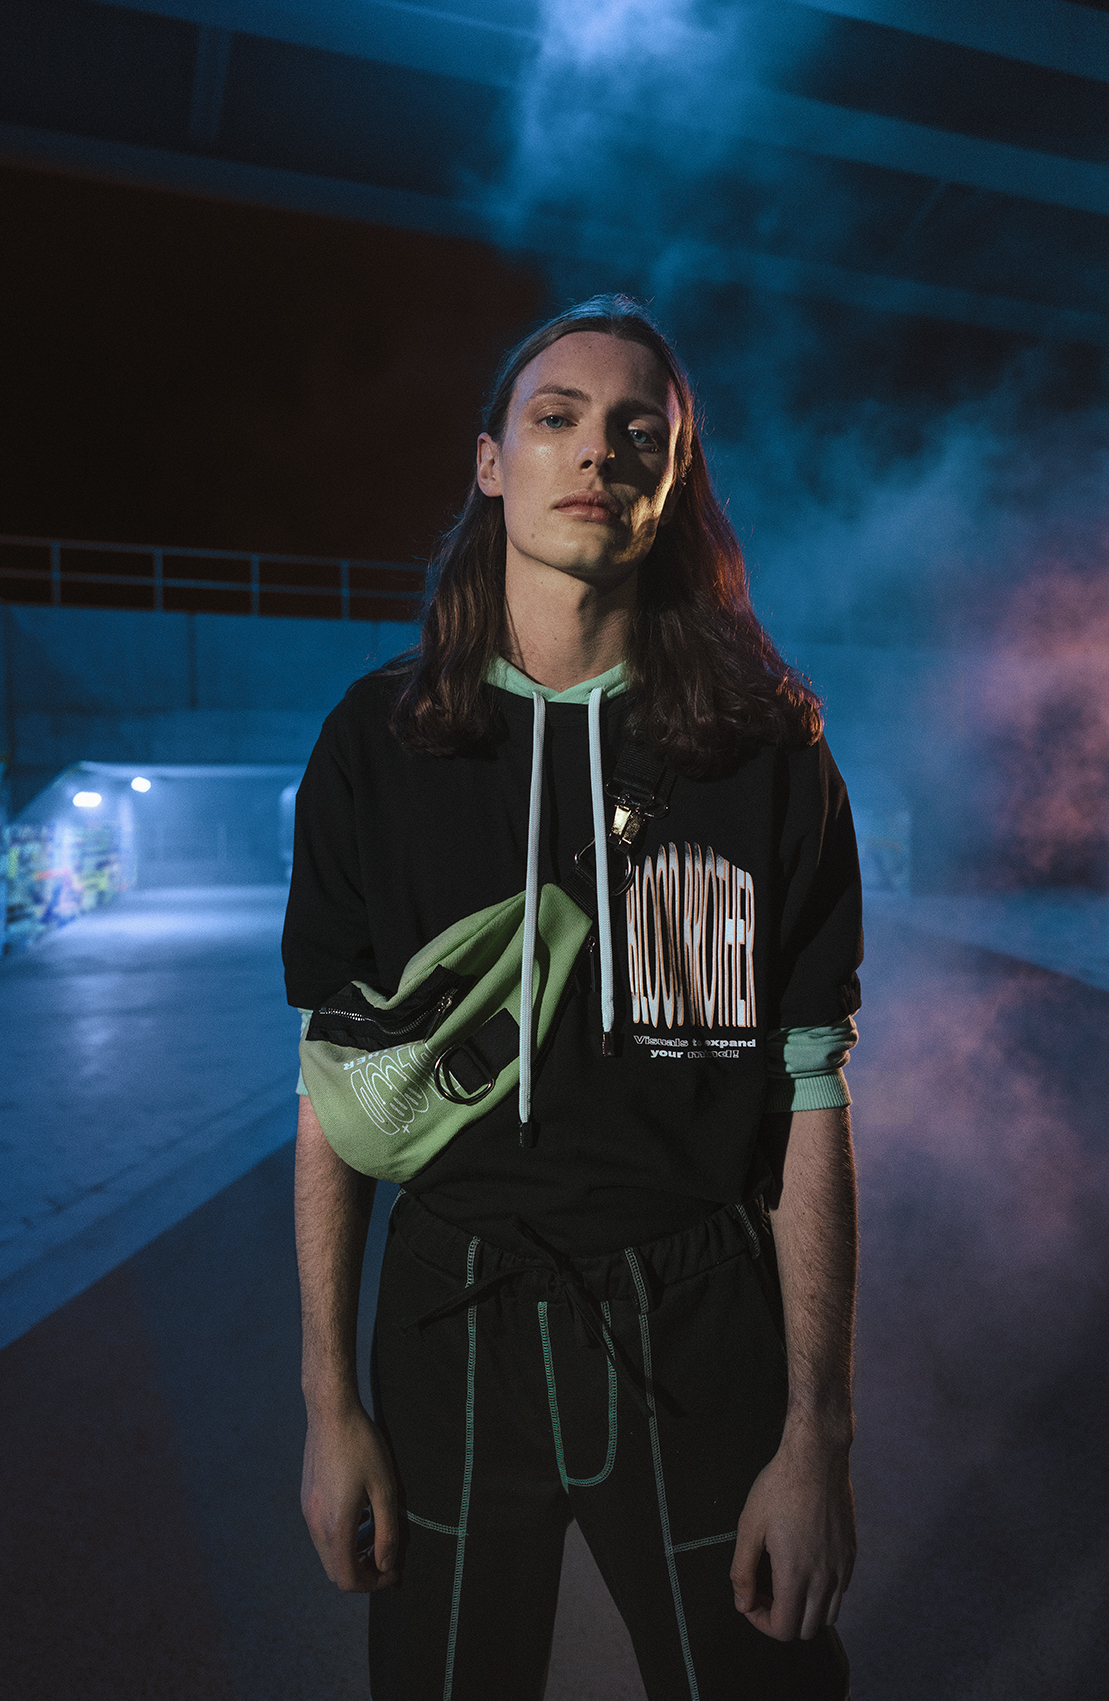 Blood Brother x Selfridges Announce Music Matters Capsule Collection